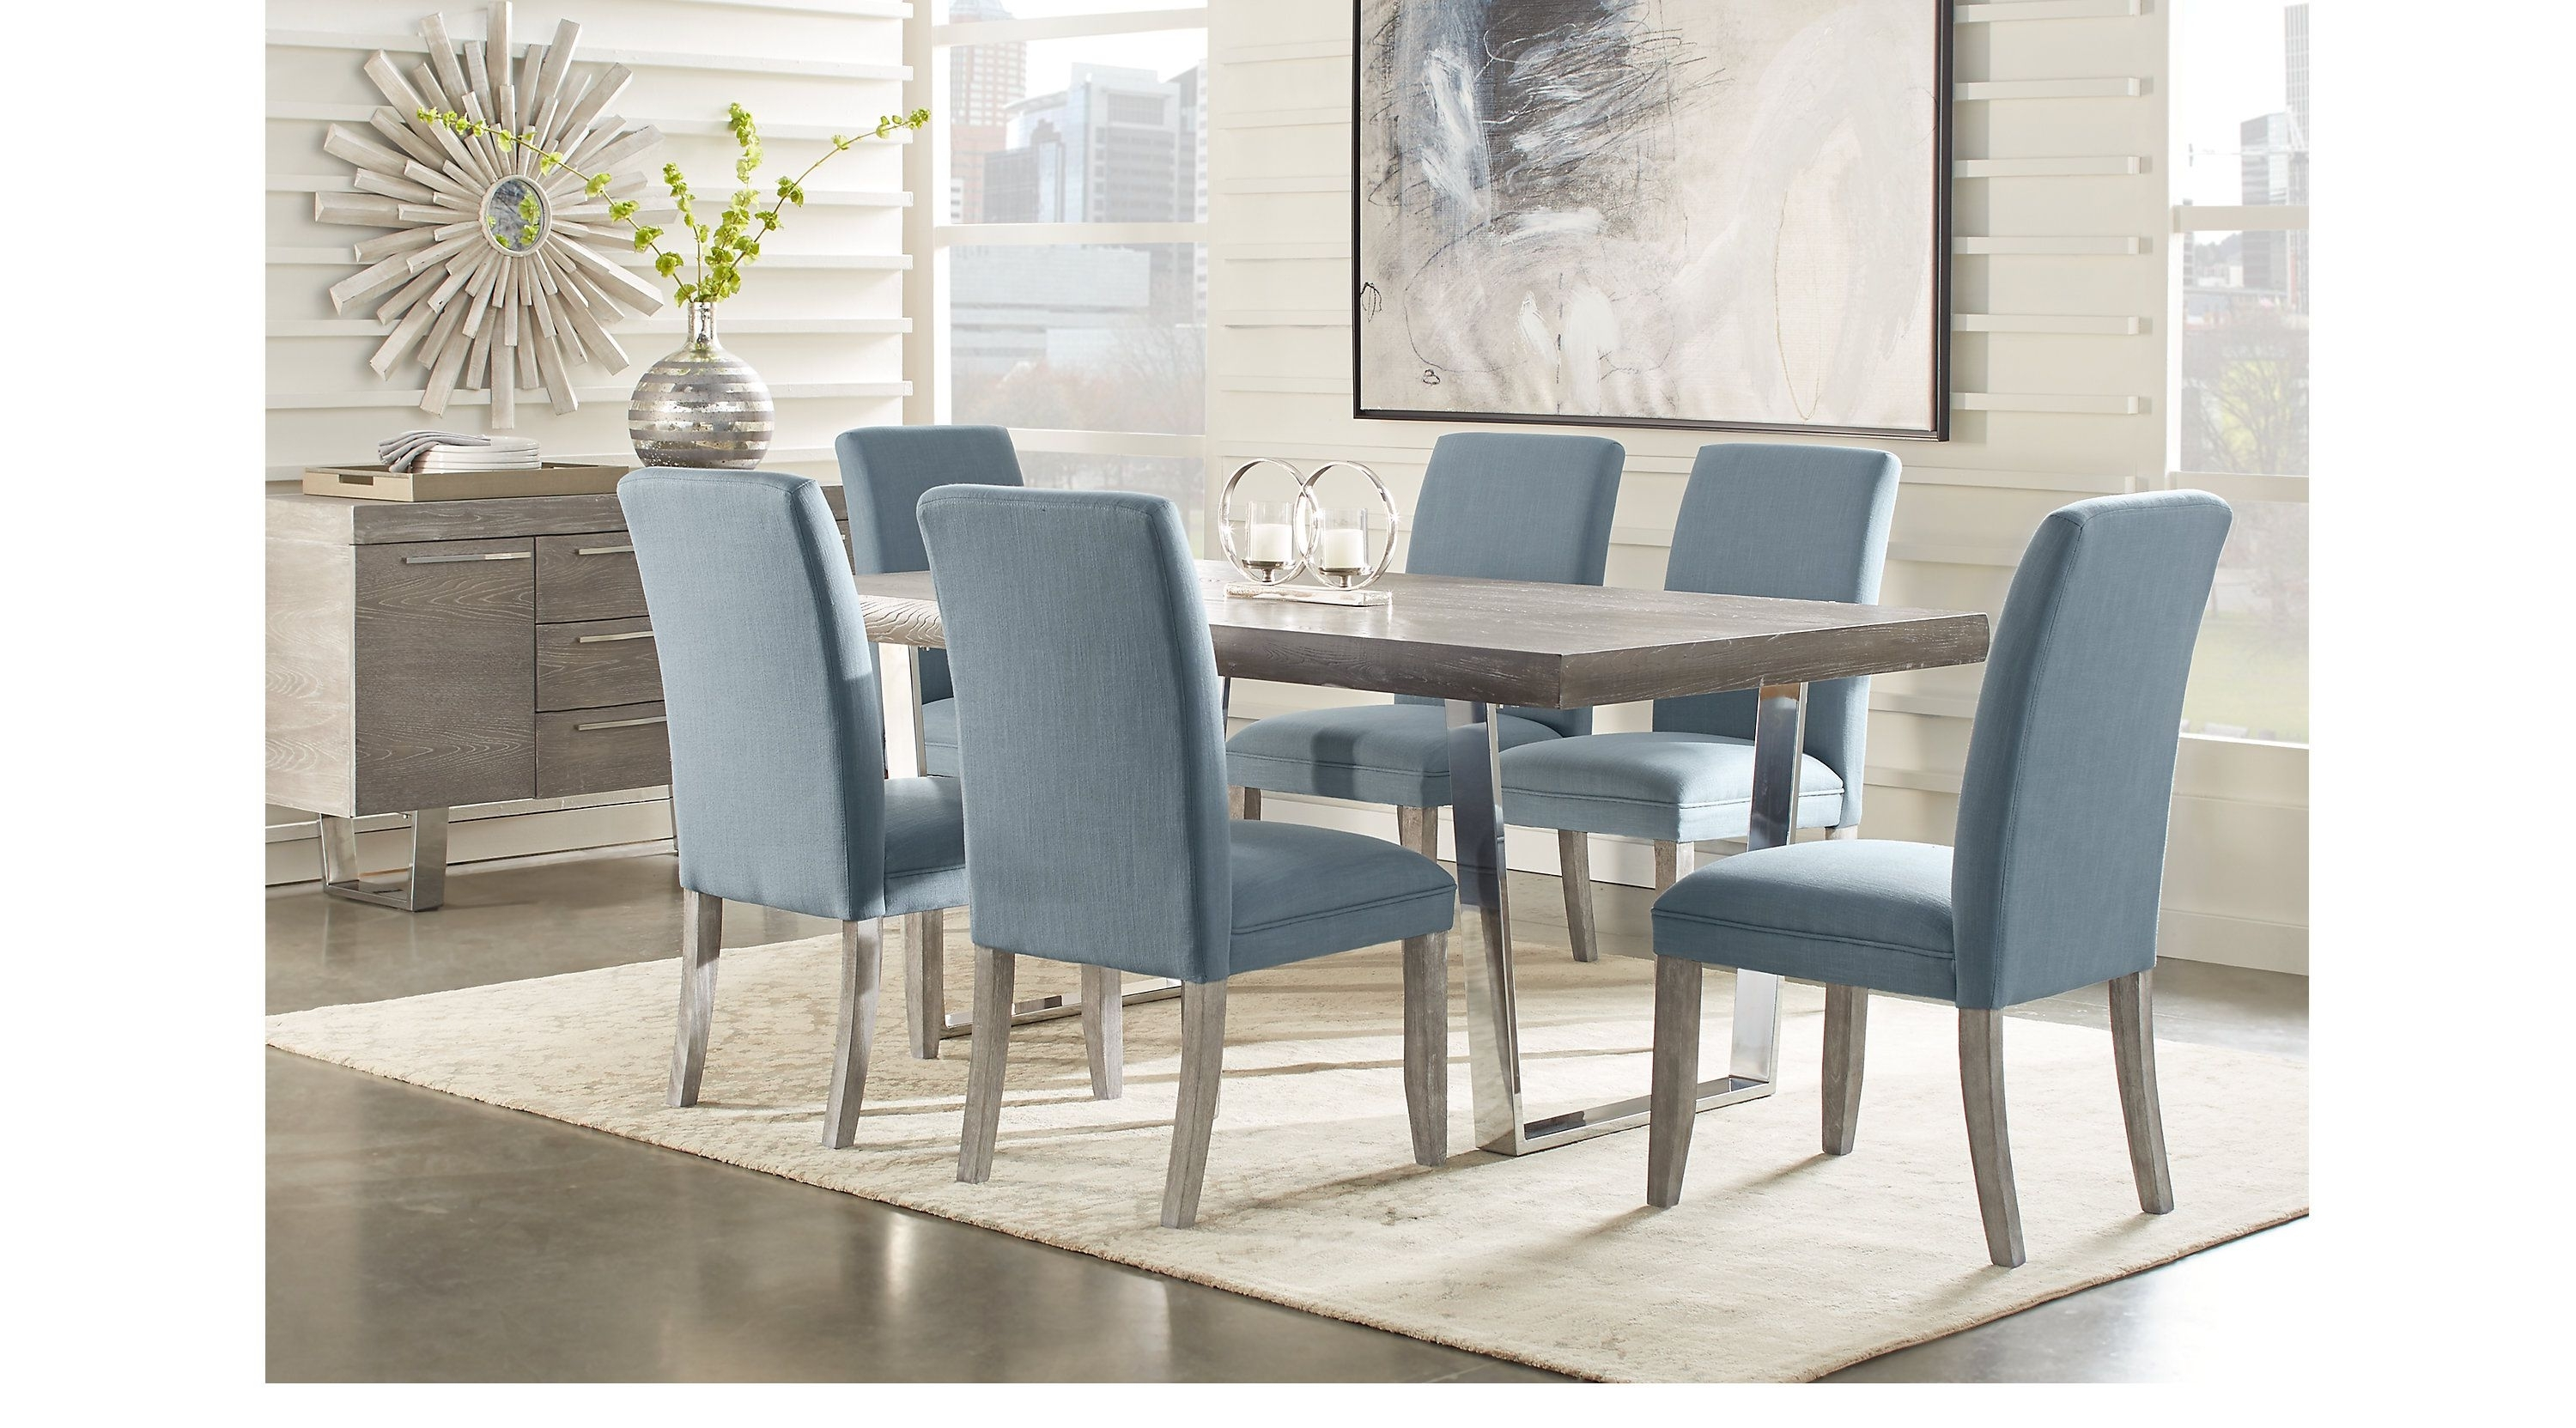 Cindy Crawford Home San Francisco Gray 5 Pc Dining Room (View 4 of 25)